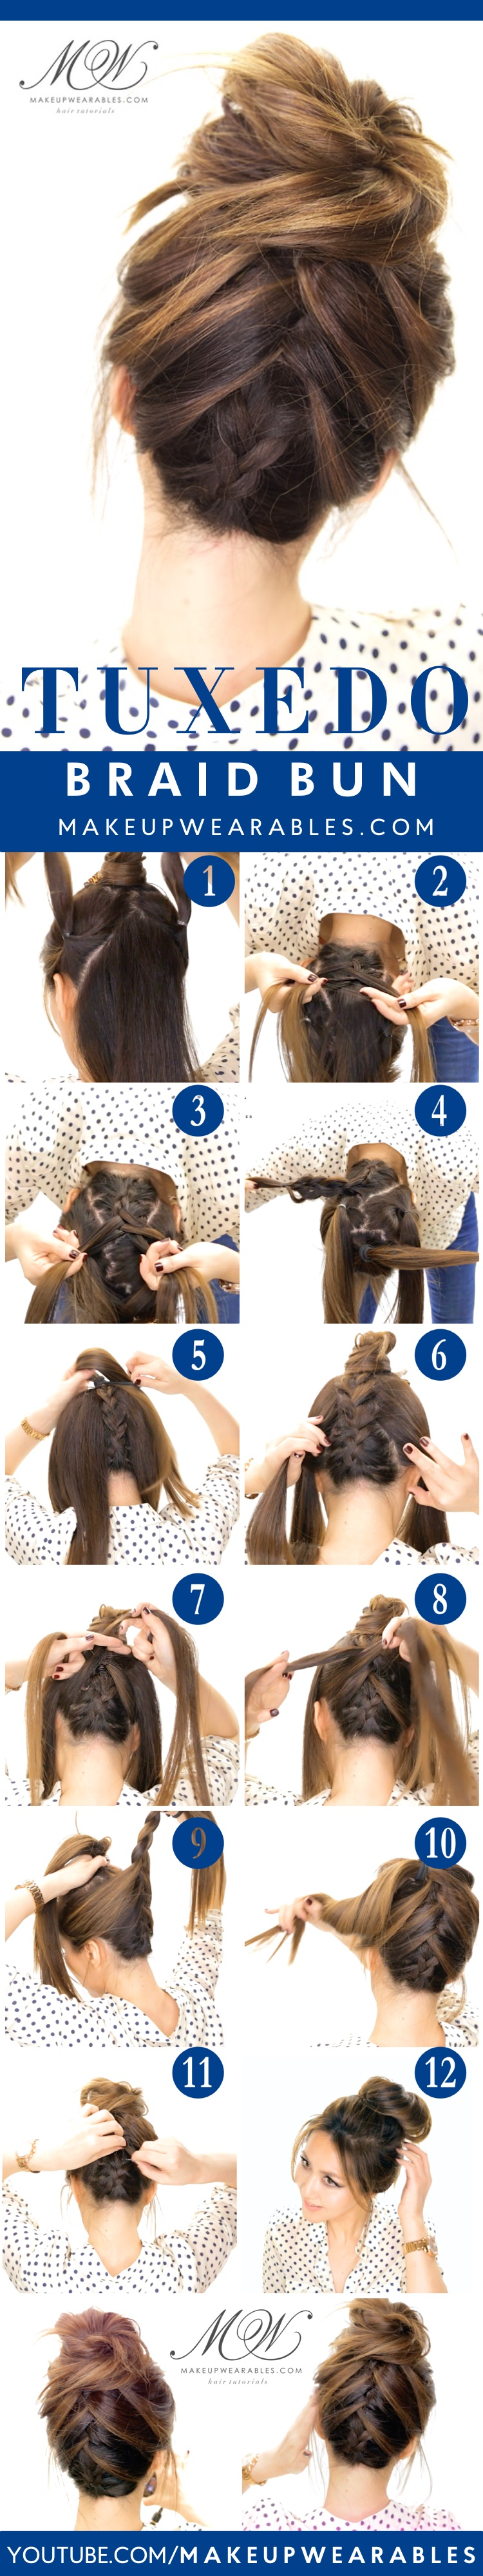 10 Easy And Cute Hair Tutorials For Any Occassion